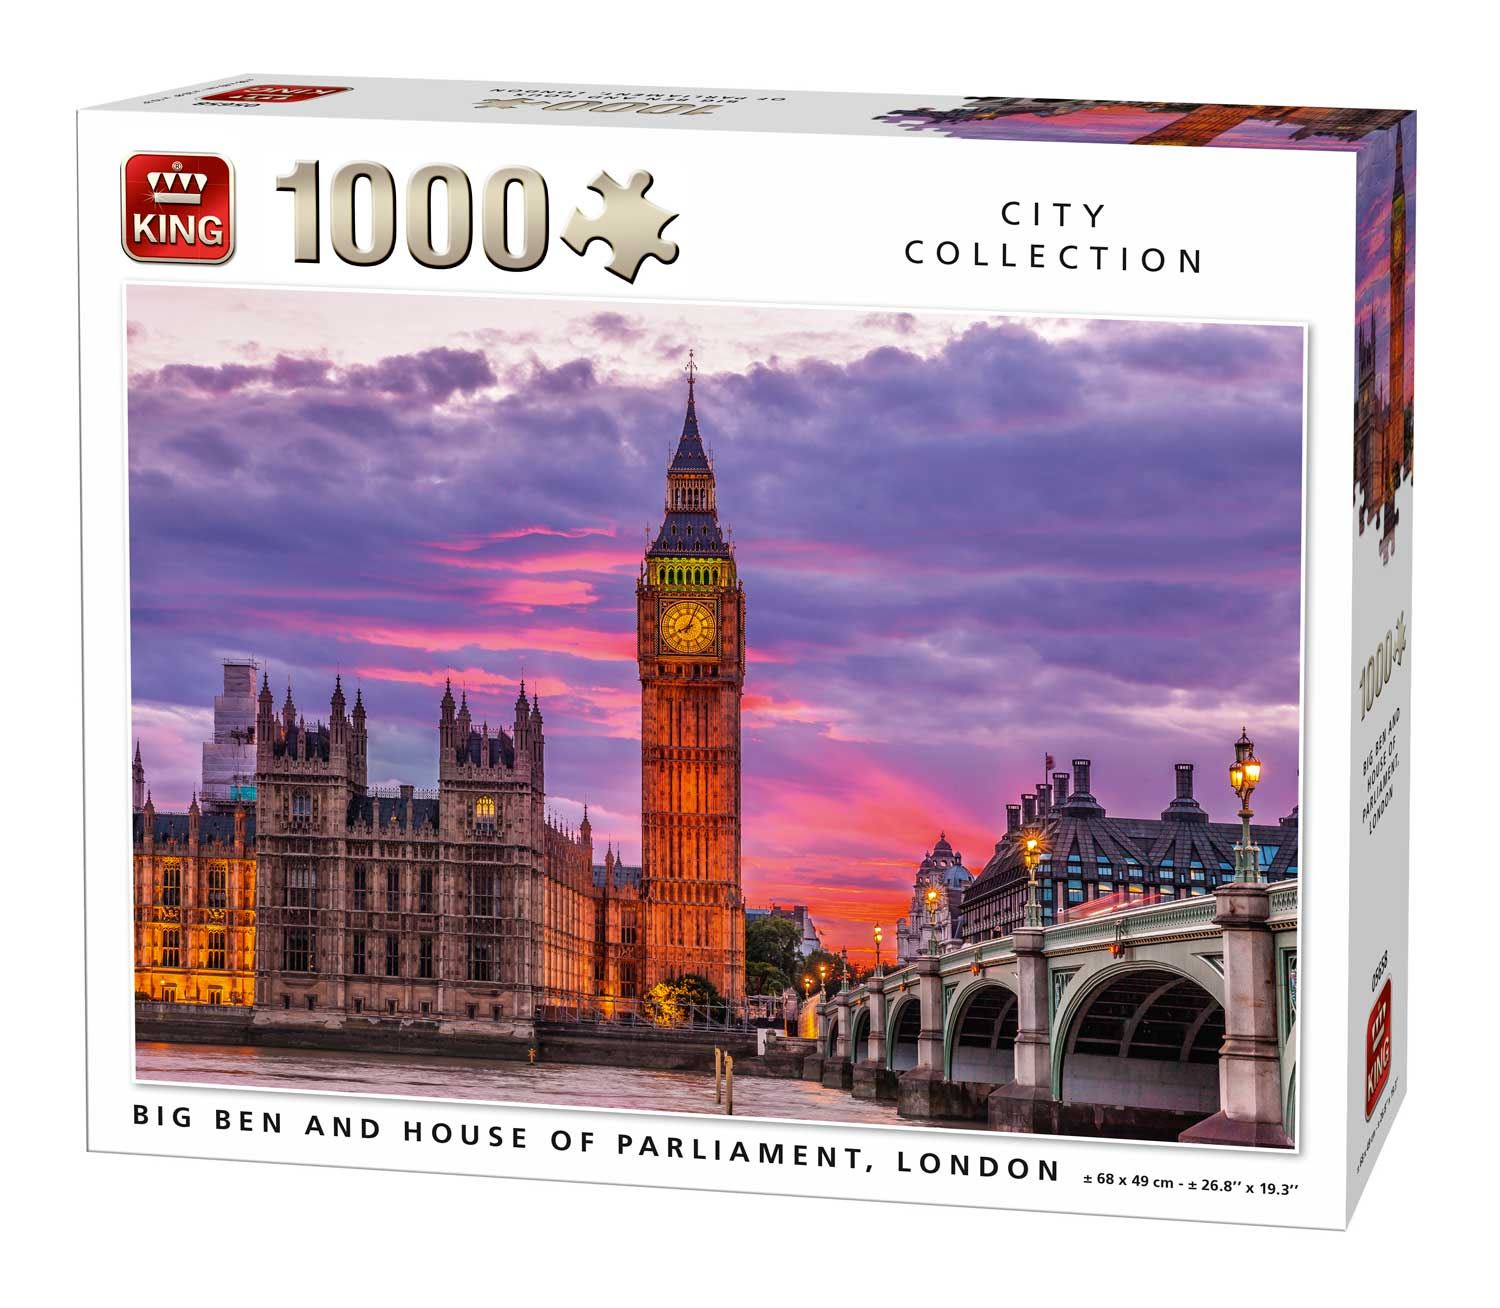 King Big Ben and Houses of Parliament London Jigsaw Puzzle (1000 Pieces)